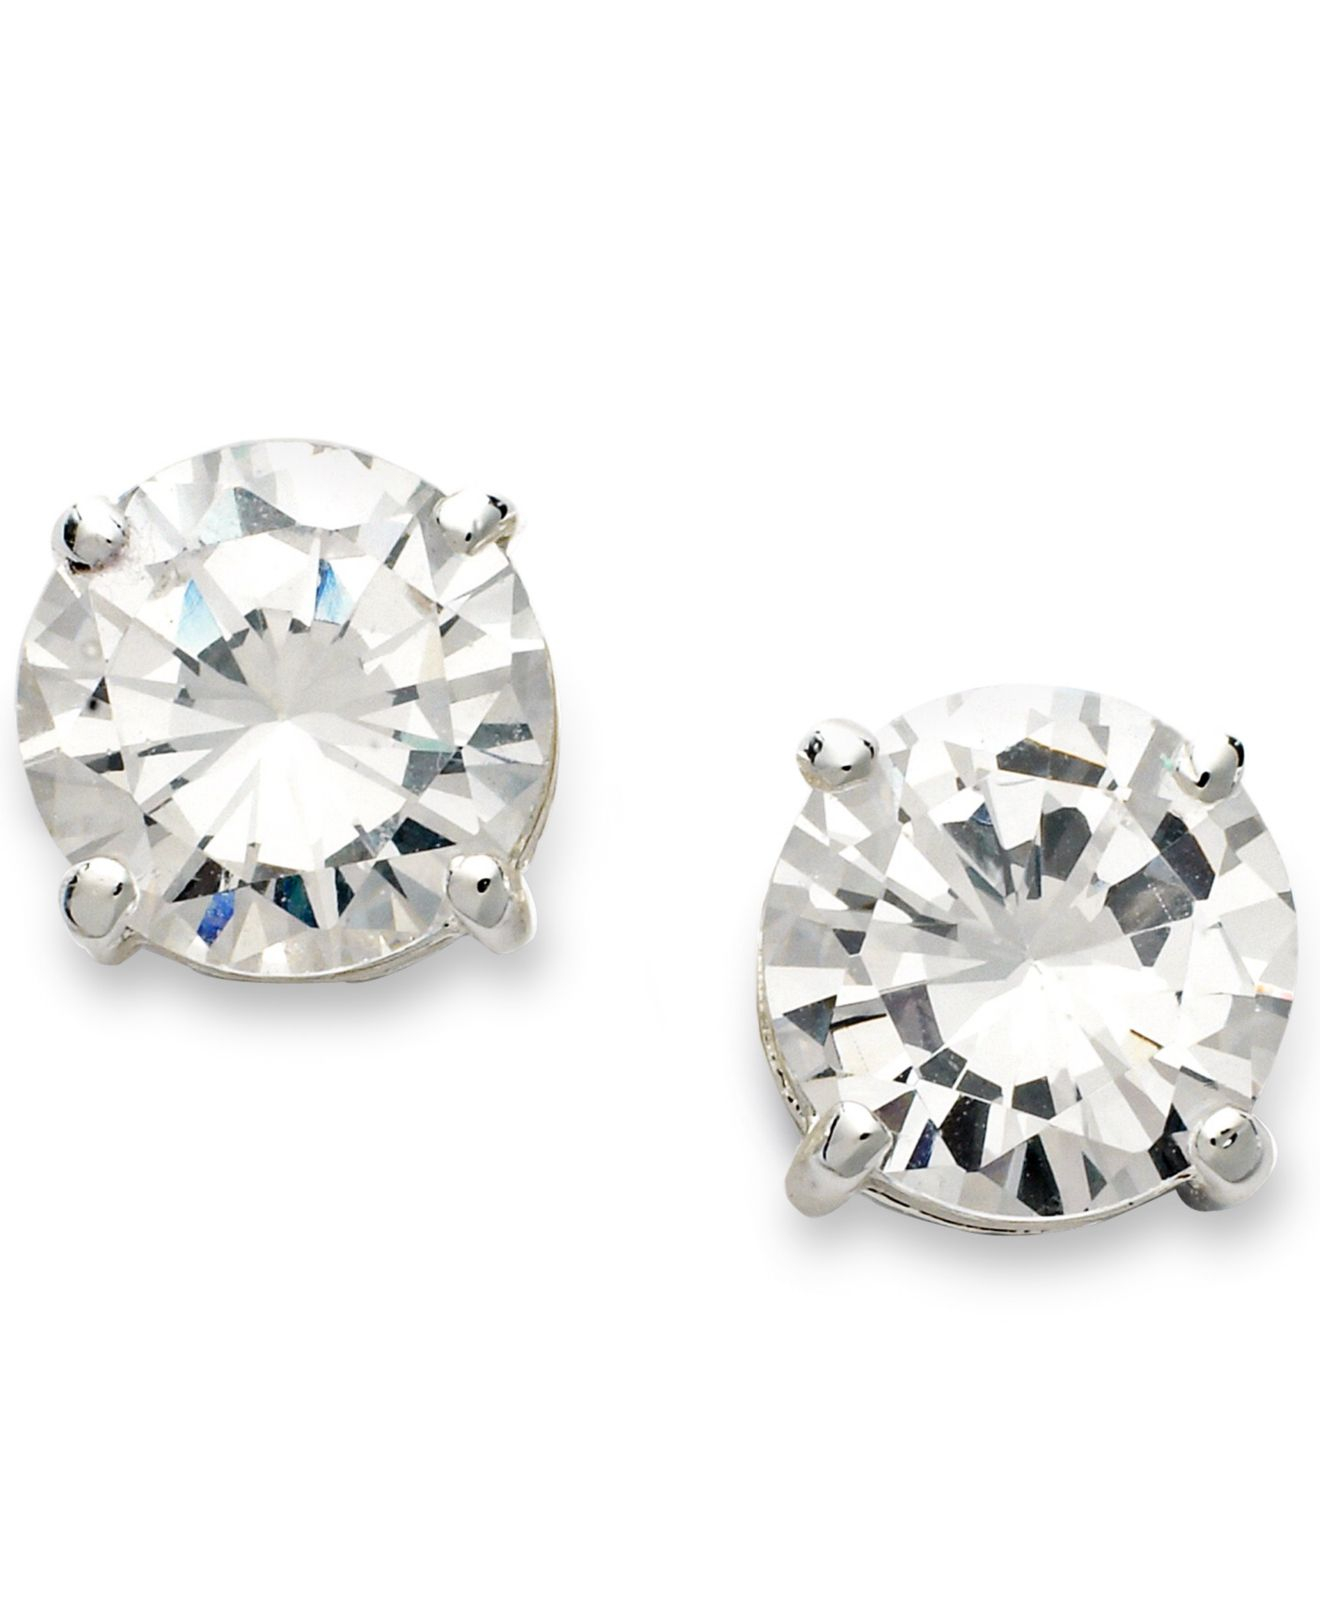 main jenny clear by pav stud rsp jools online cubic johnlewis round at pave earrings pdp brown surround zirconia buyjools